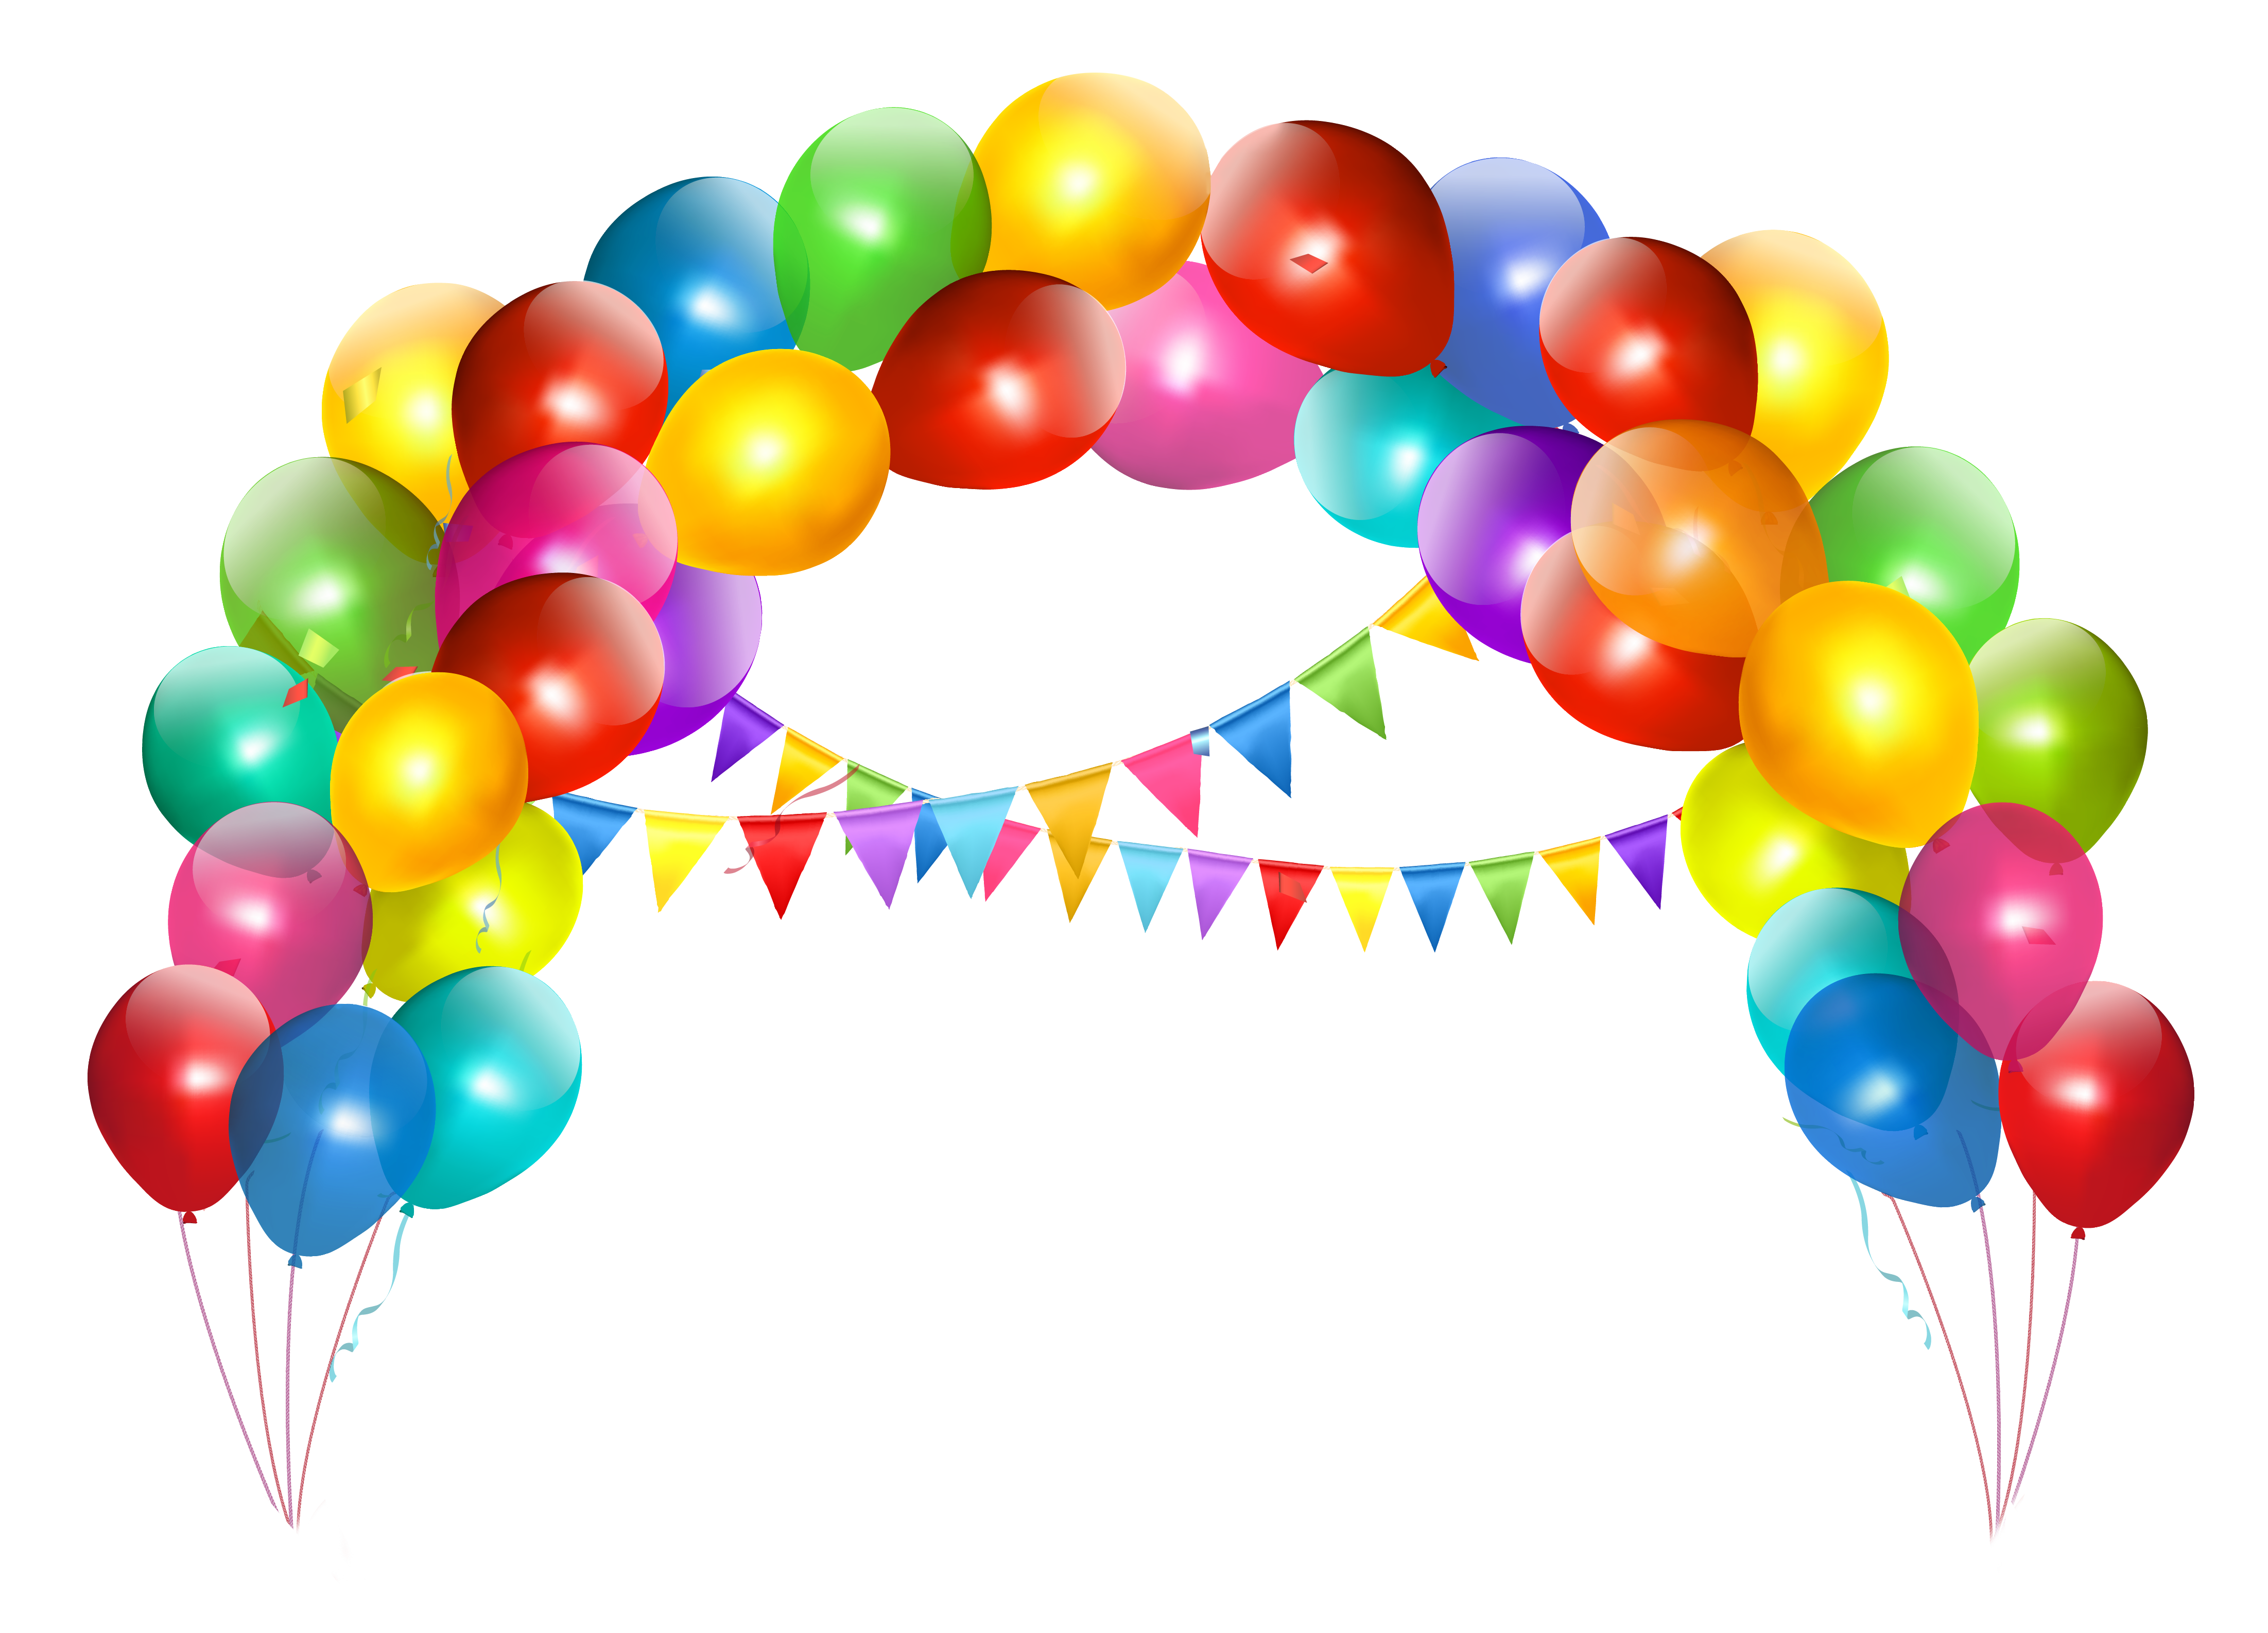 Balloons clipart. Transparent balloon arch with